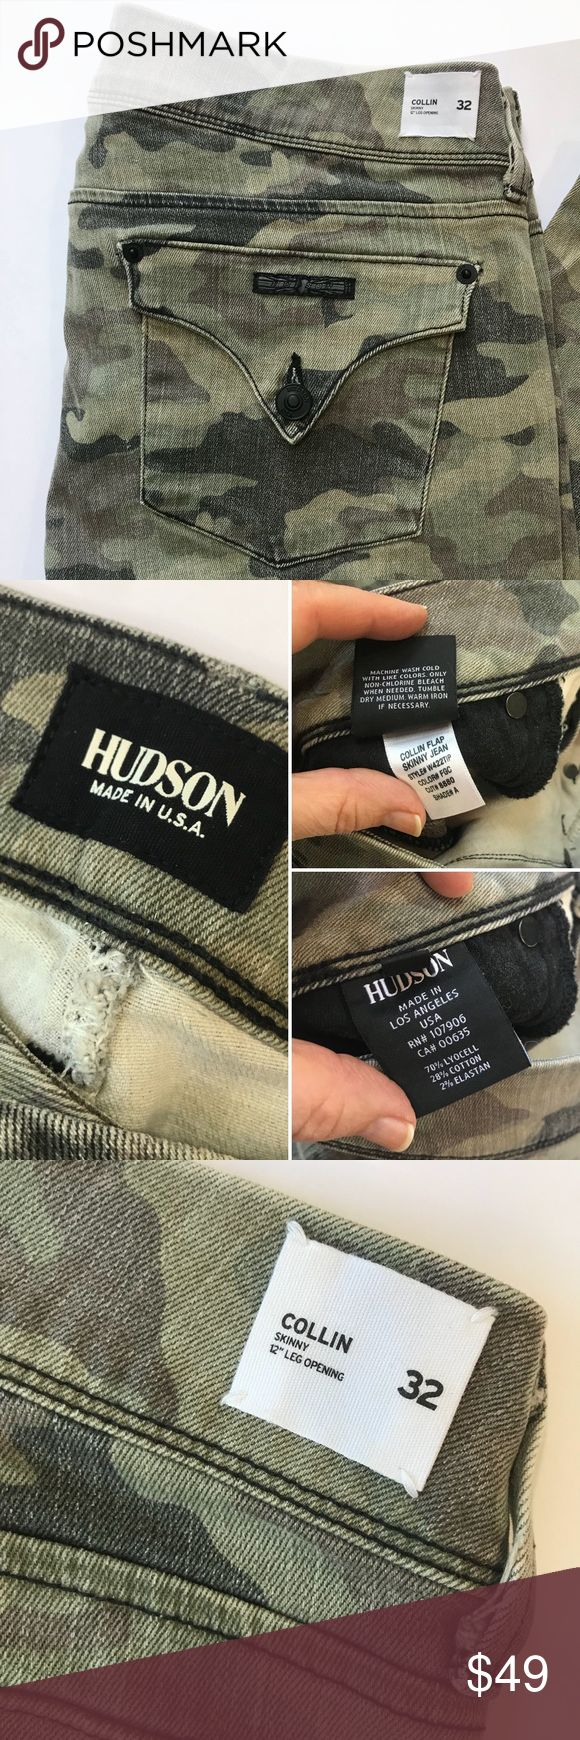 """Hudson Collin Flap Camouflage Skinny Jeans 32 Camouflage Collin Flap jeans skinny by Hudson. Inseam approx 30"""", Rise approx 9.5"""". Style W422TIP. Faded Green Camo. Excellent used condition. Hudson Jeans Jeans Skinny"""